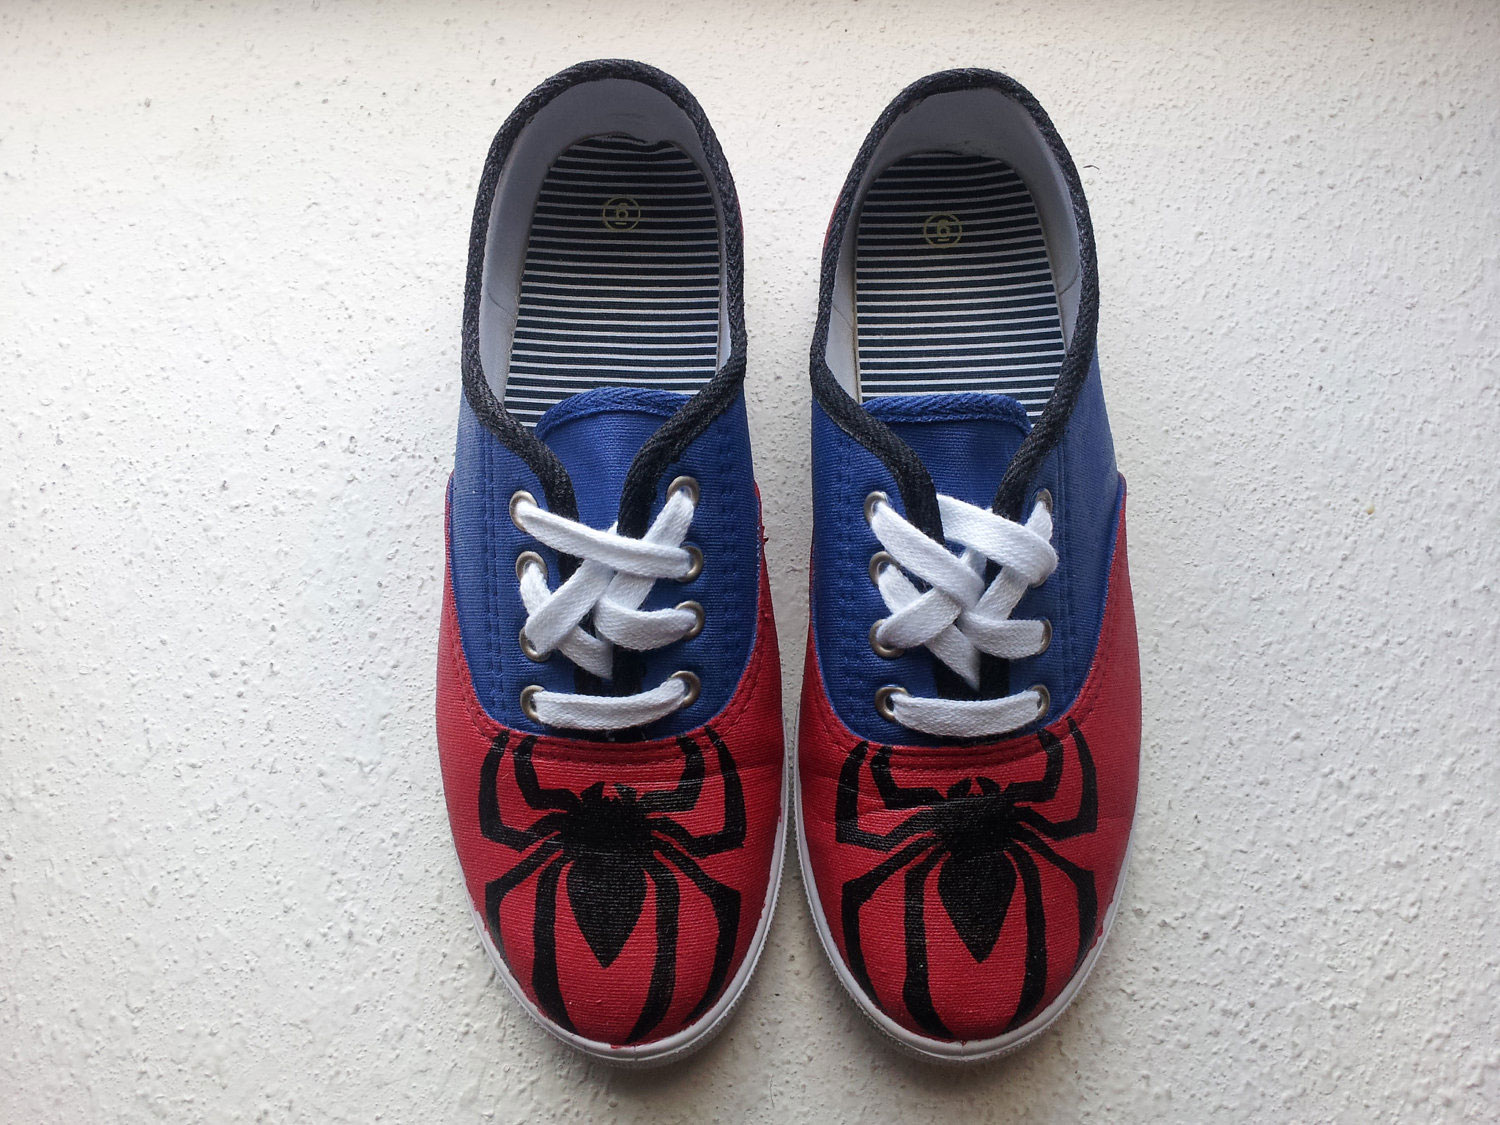 Spider-Man-Hand-Painted-Shoes